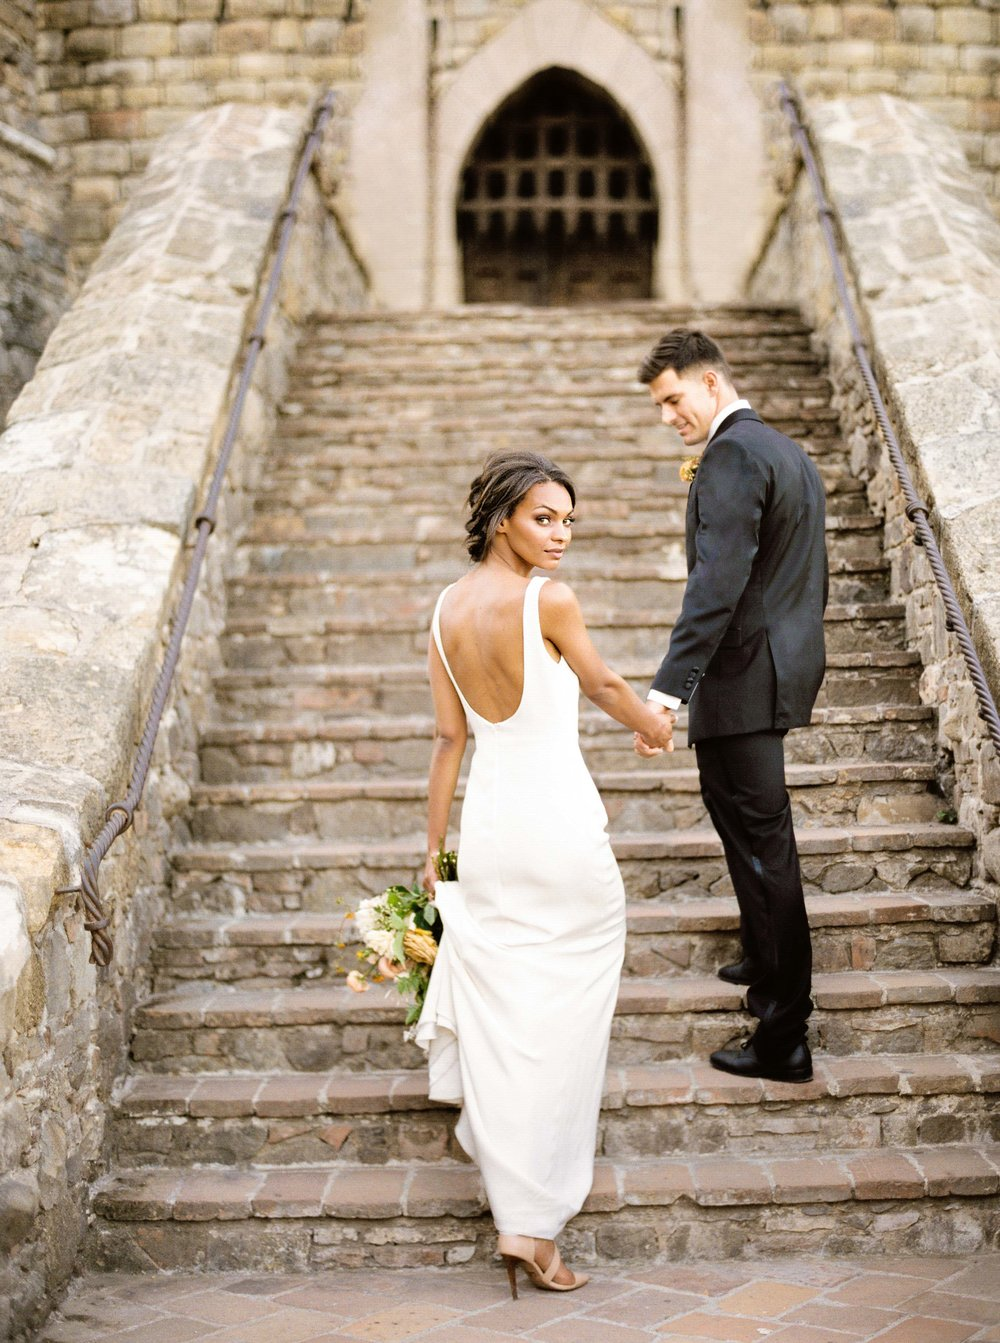 001napa_wedding_photographer_and_videographer_destination_and_elopement_photography.jpg